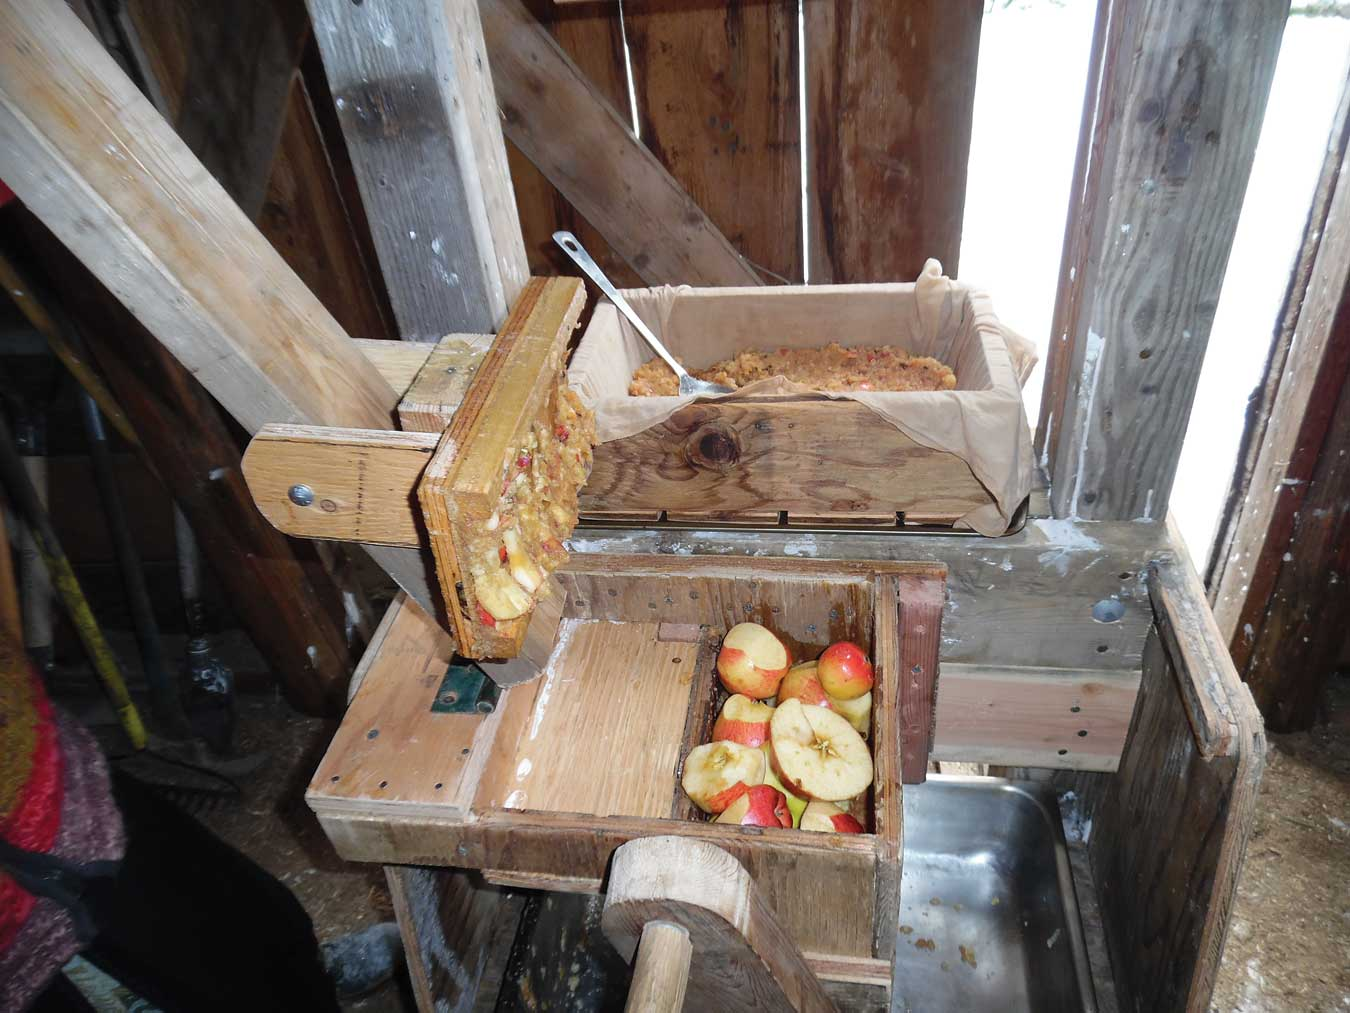 using the homemade press for cider